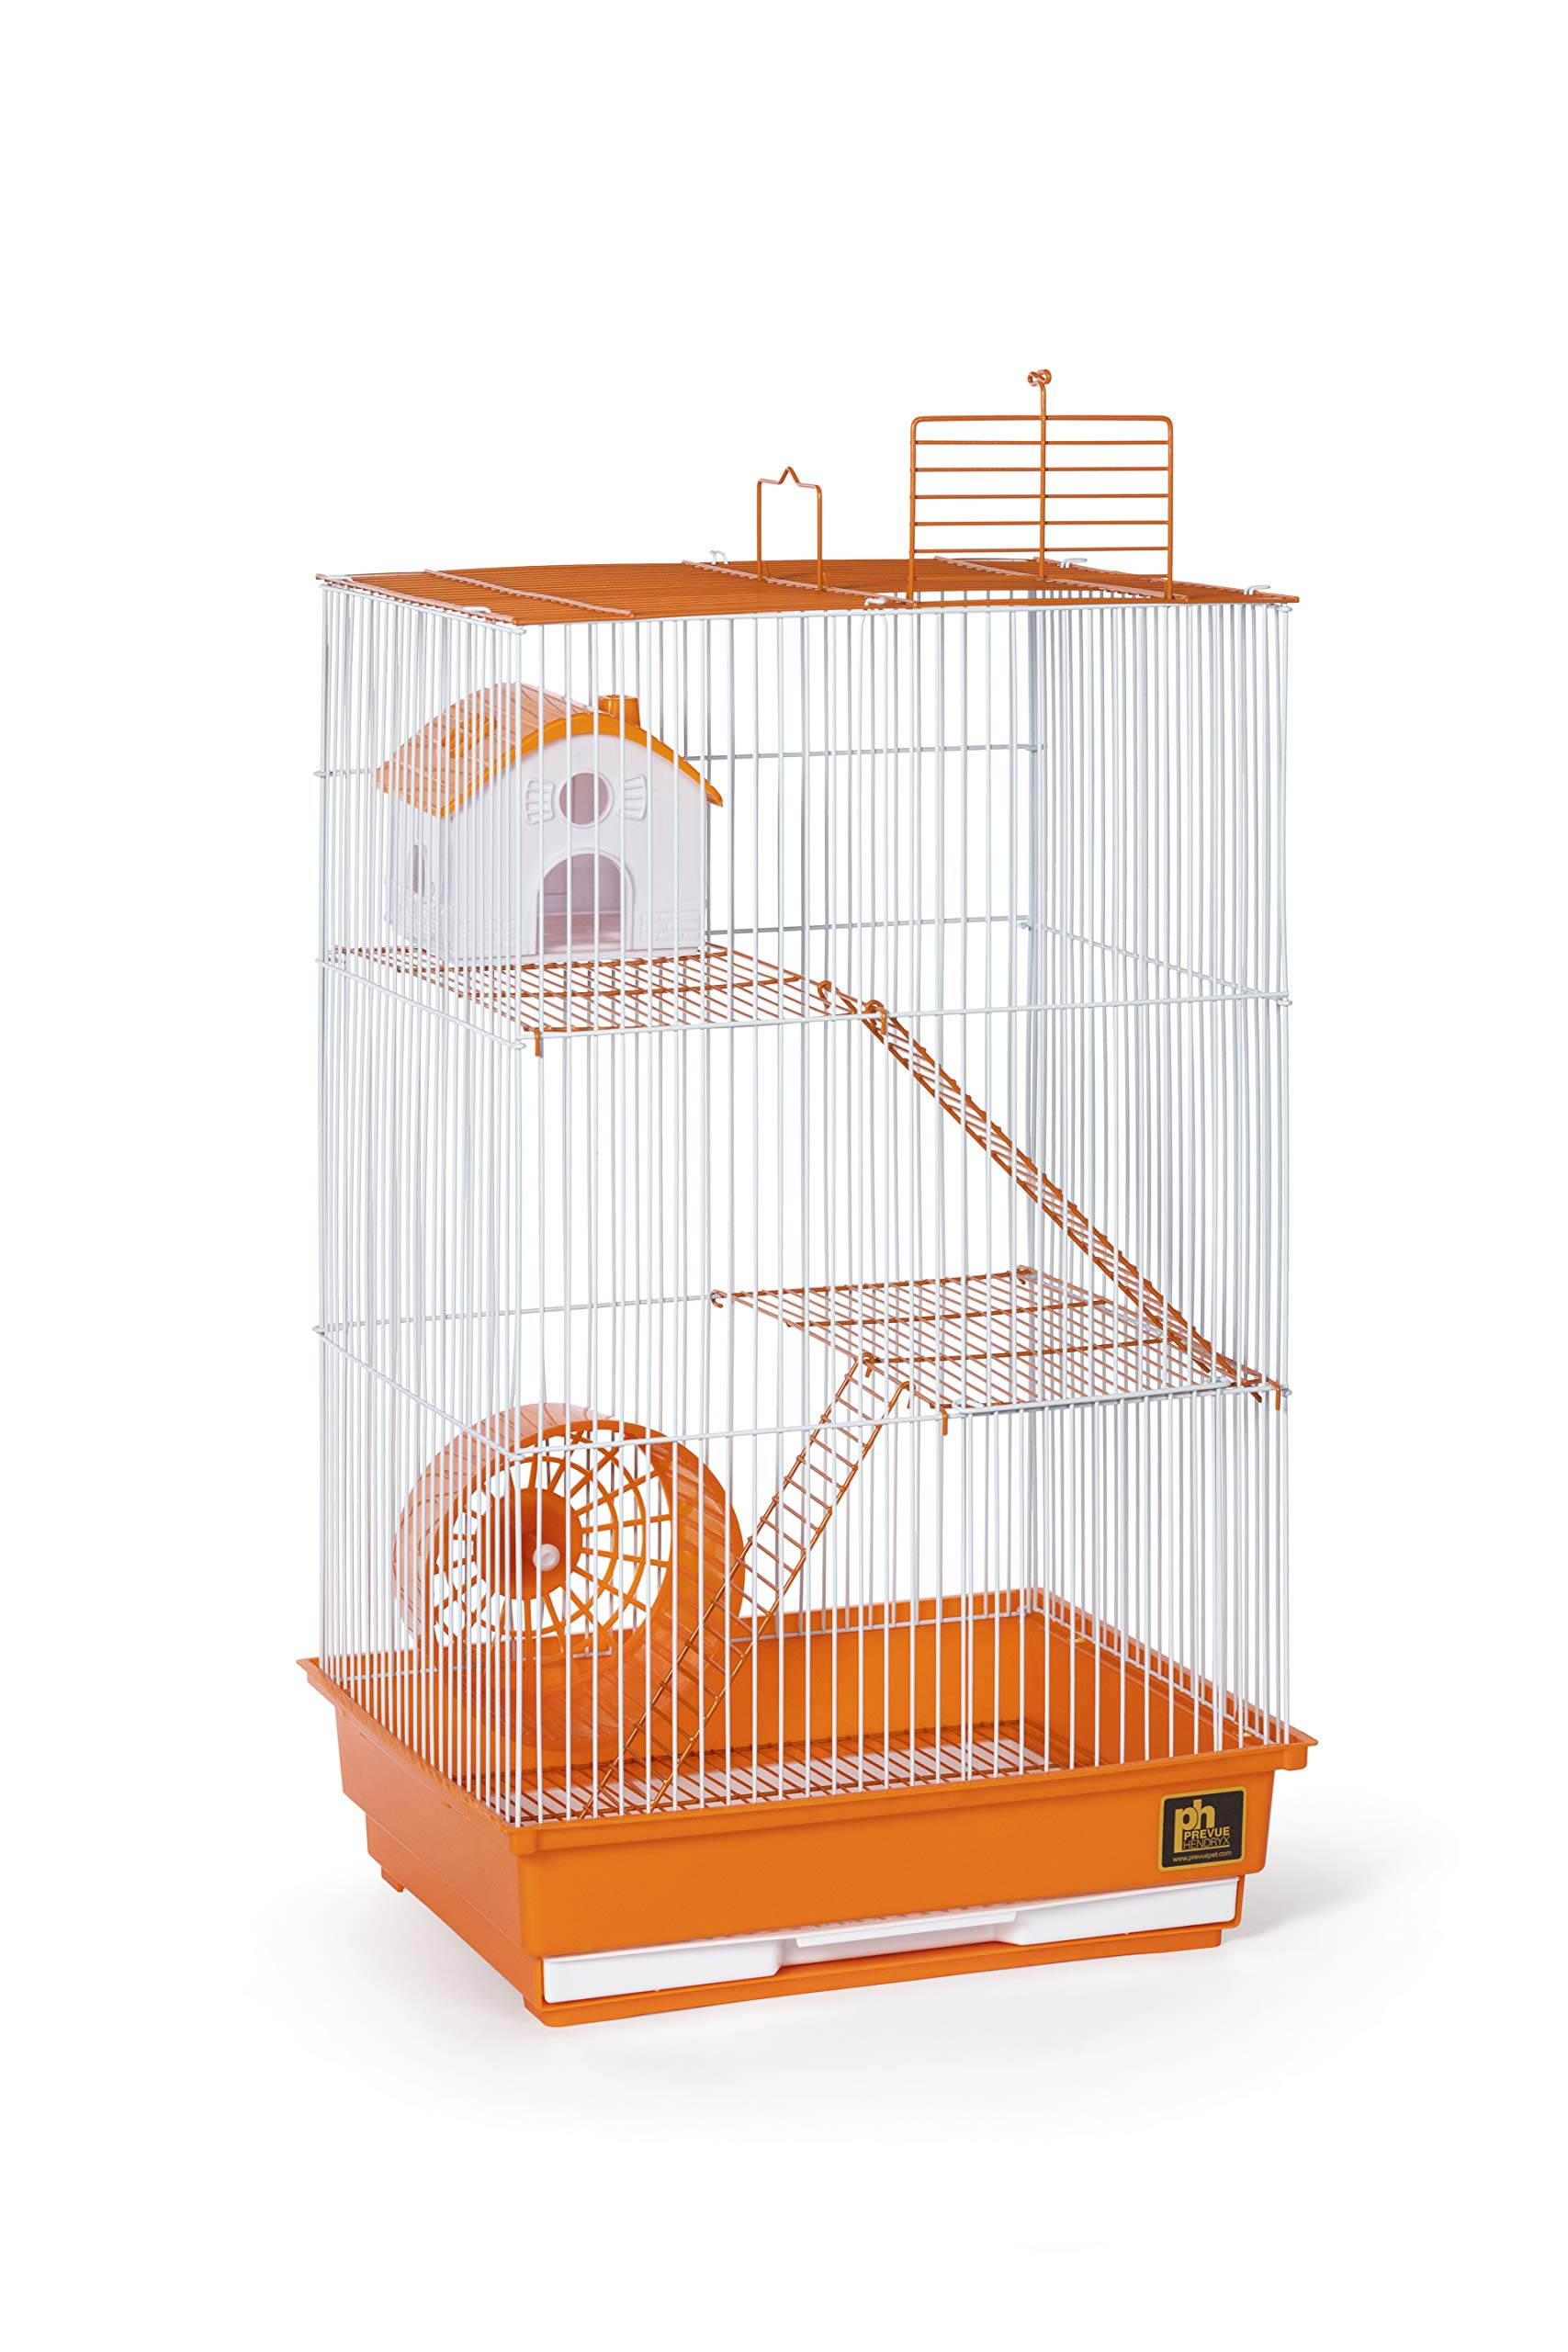 Prevue Pet Products Three-Story Hamster & Gerbil Cage Orange & White SP2030O by Prevue Pet Products (Image #1)